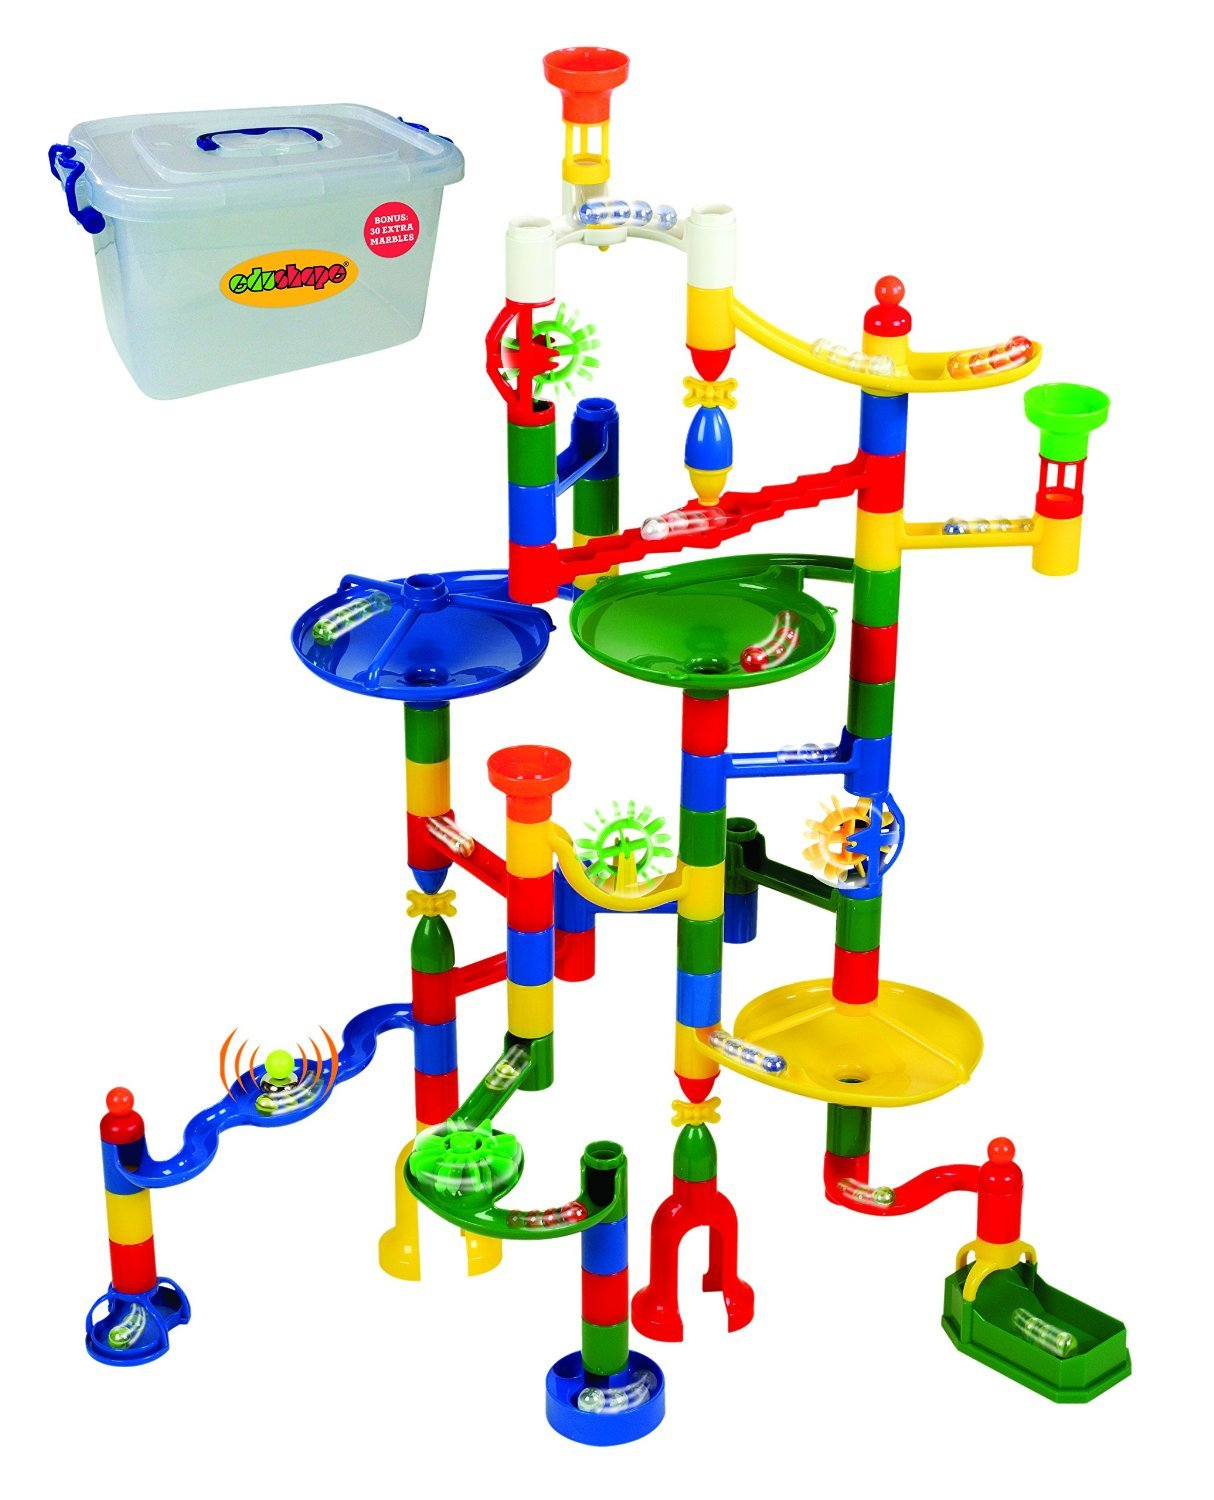 Marbulous Modular Marble Run w/82 Pieces Plus 50 Marbles Total of 132 Pieces - Made of Quality Child-Safe Plastic in Reusable Plastic Bucket by Edushape